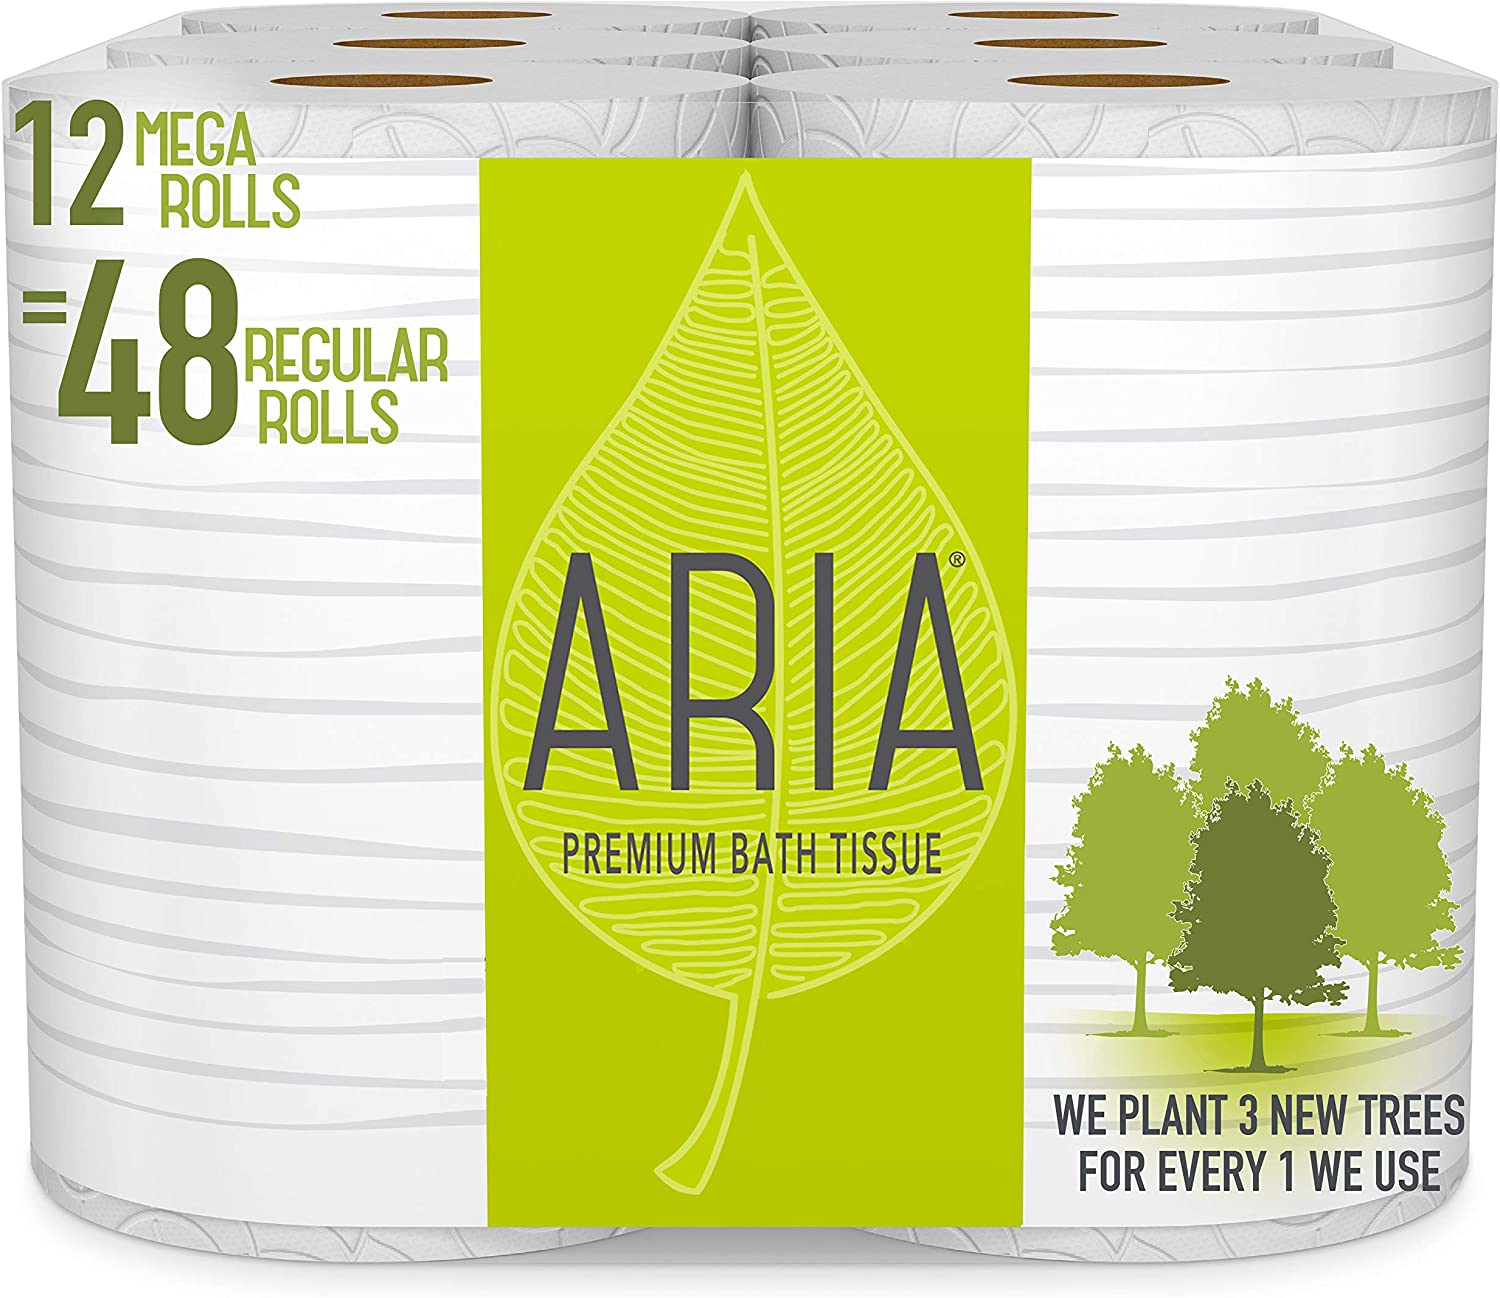 Aria Premum toilet paper is made with 100% renewable power. It's also very soft and strong, ideal for everyday use.